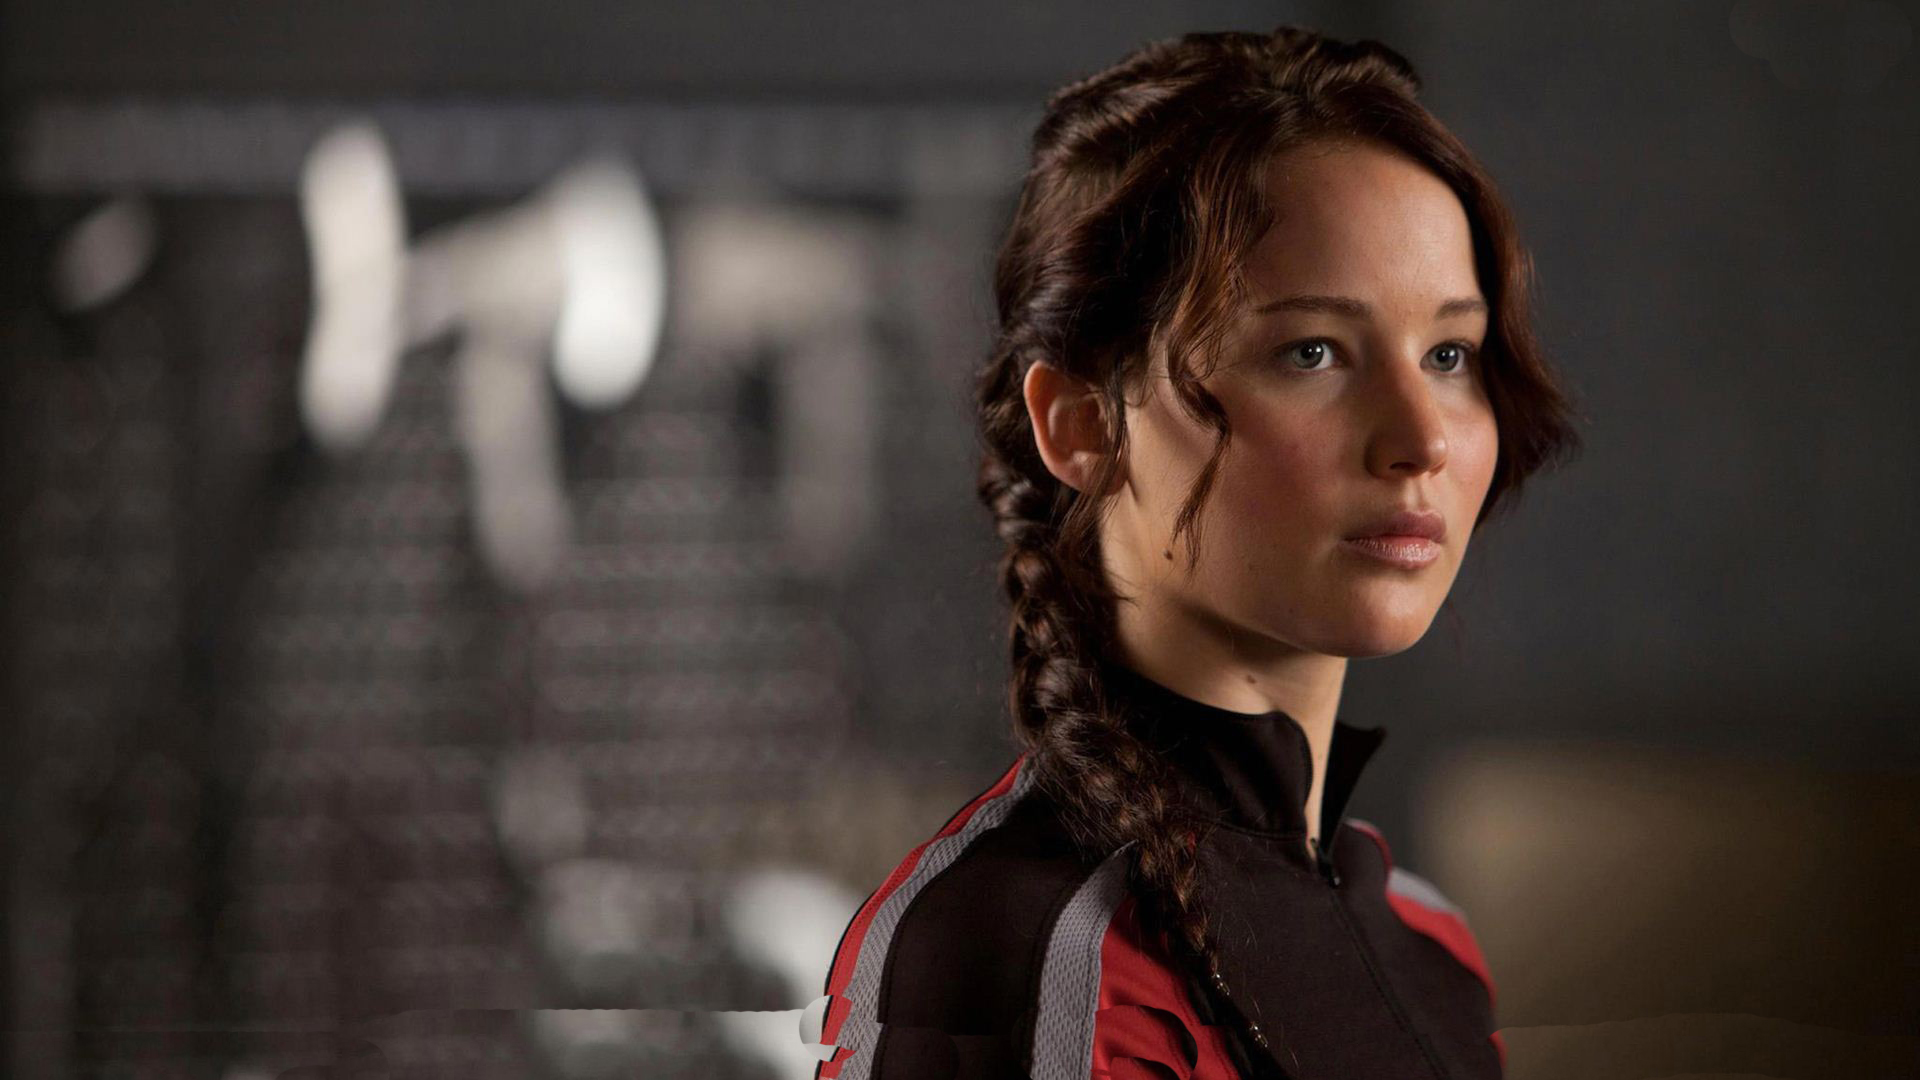 Exclusive Free Jennifer Lawrence Picture Download